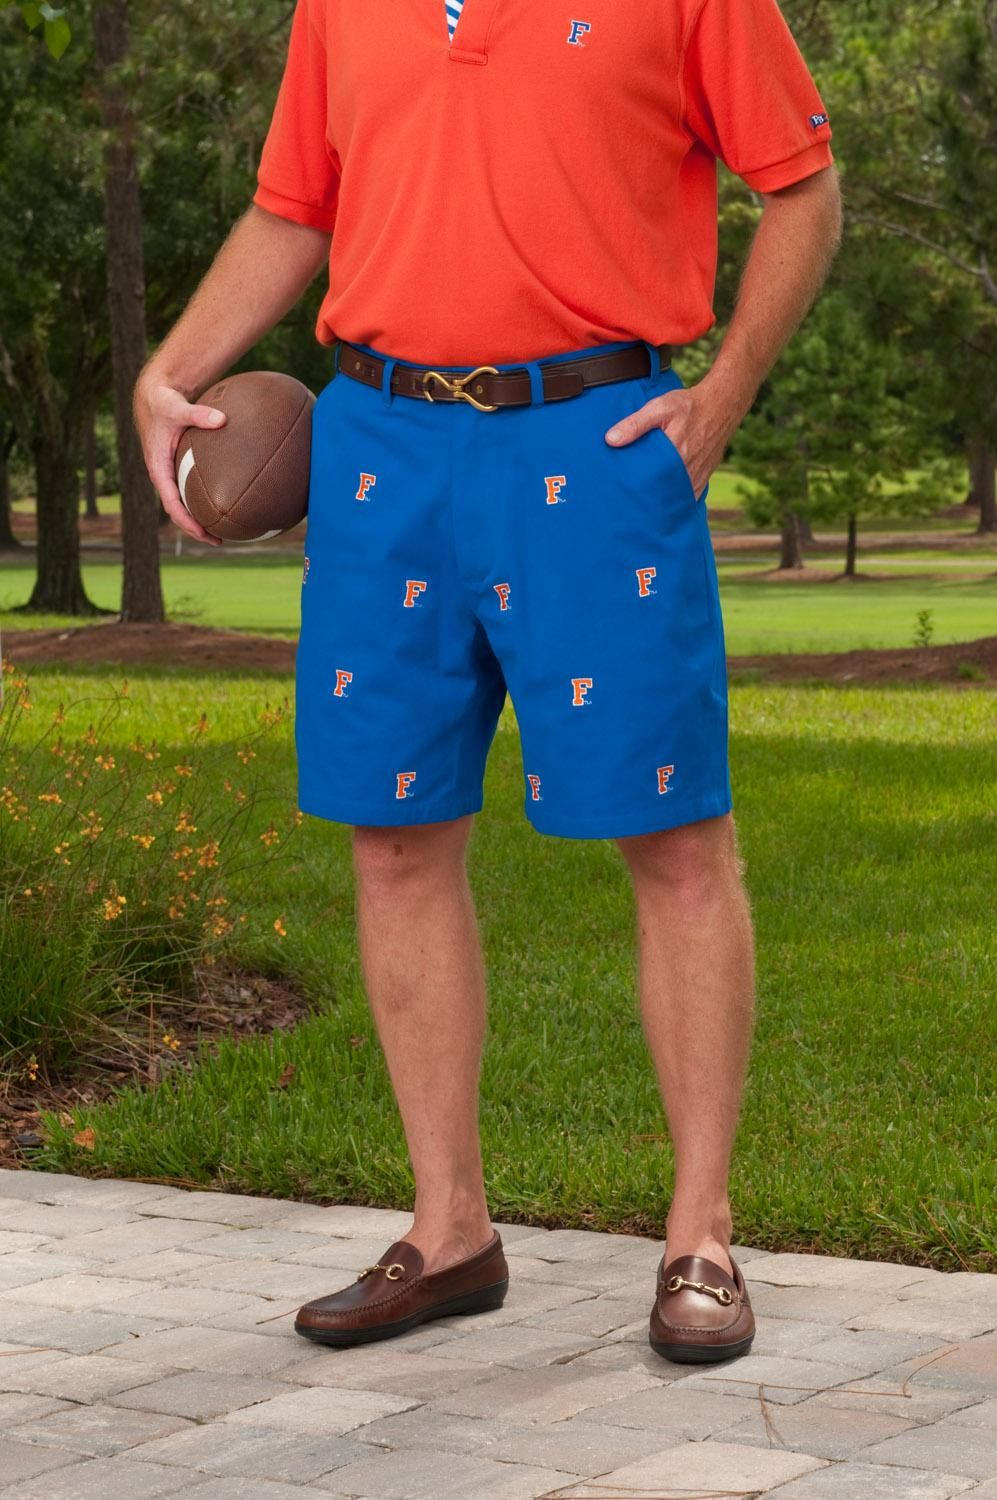 Aaron hall with images blue shorts men florida